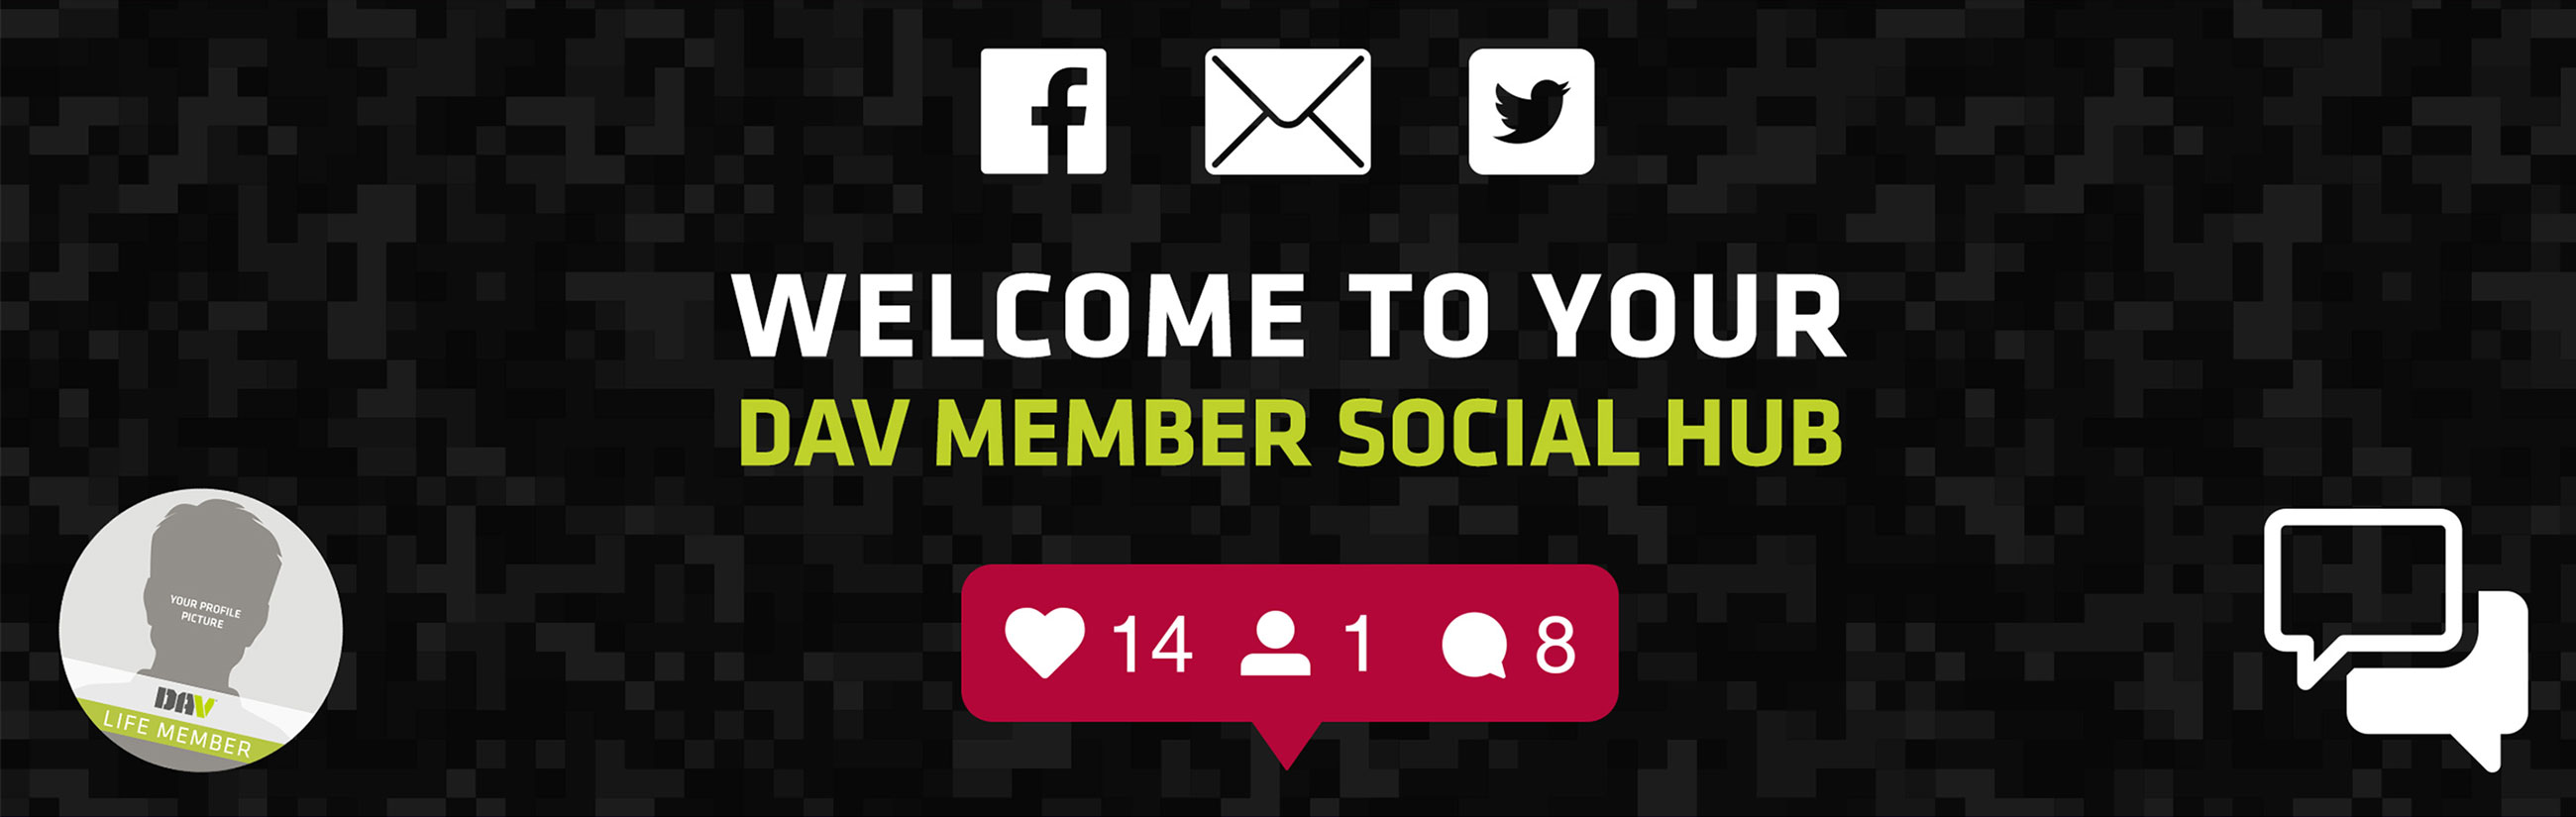 Welcome to your DAV Member Social Hub